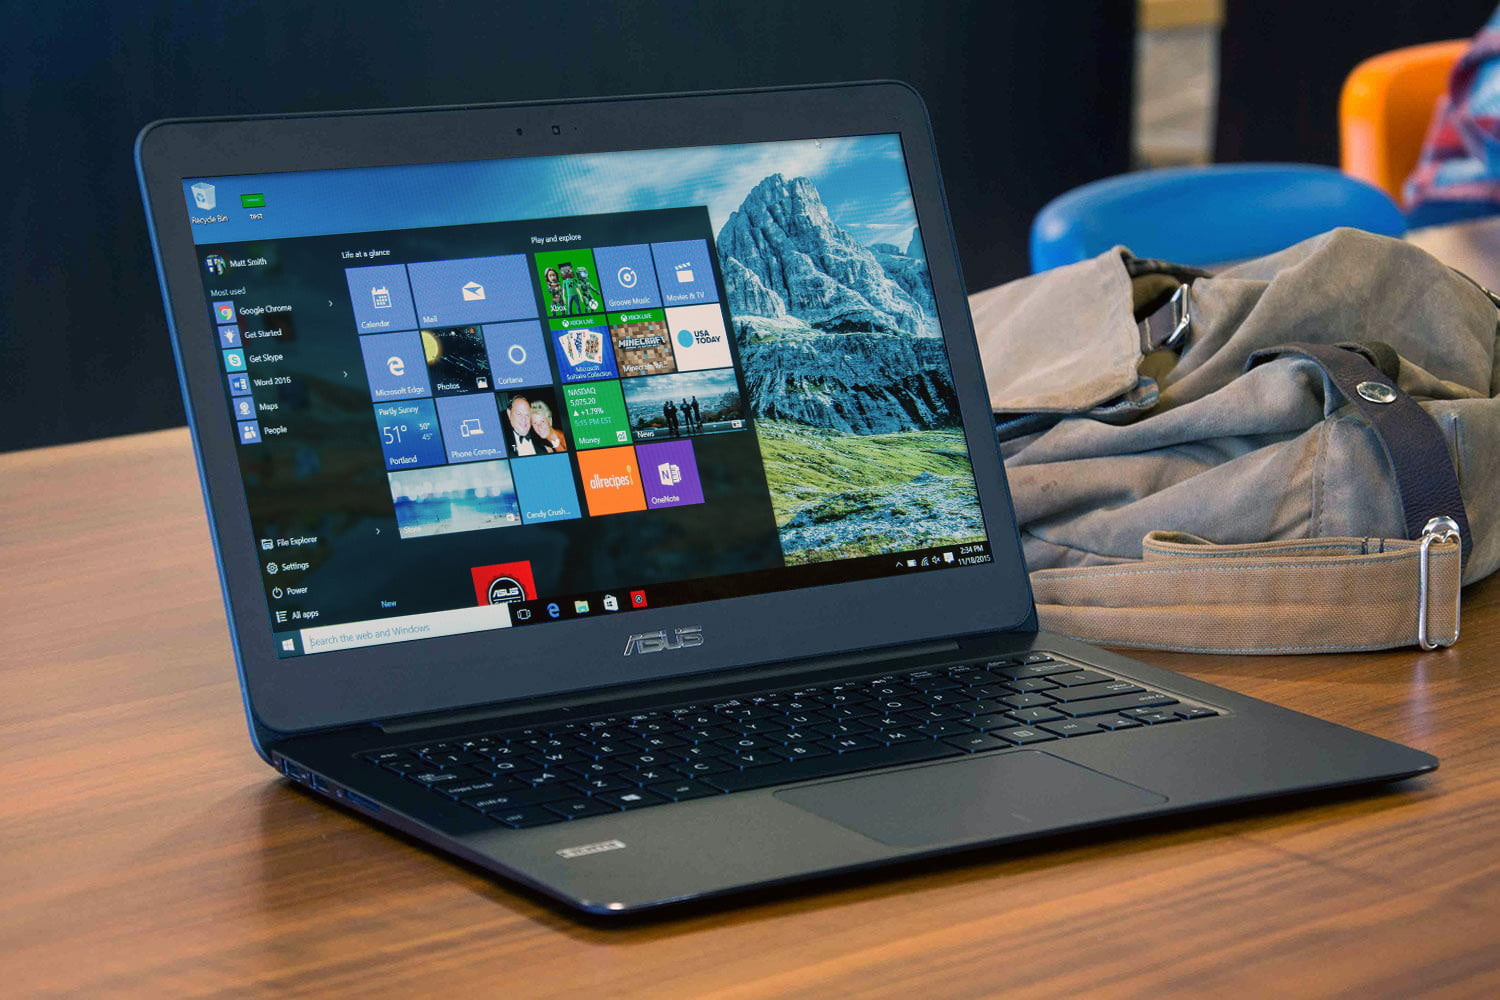 Begini, Nih! Cara Cek Windows 10 Asli PC atau Laptop